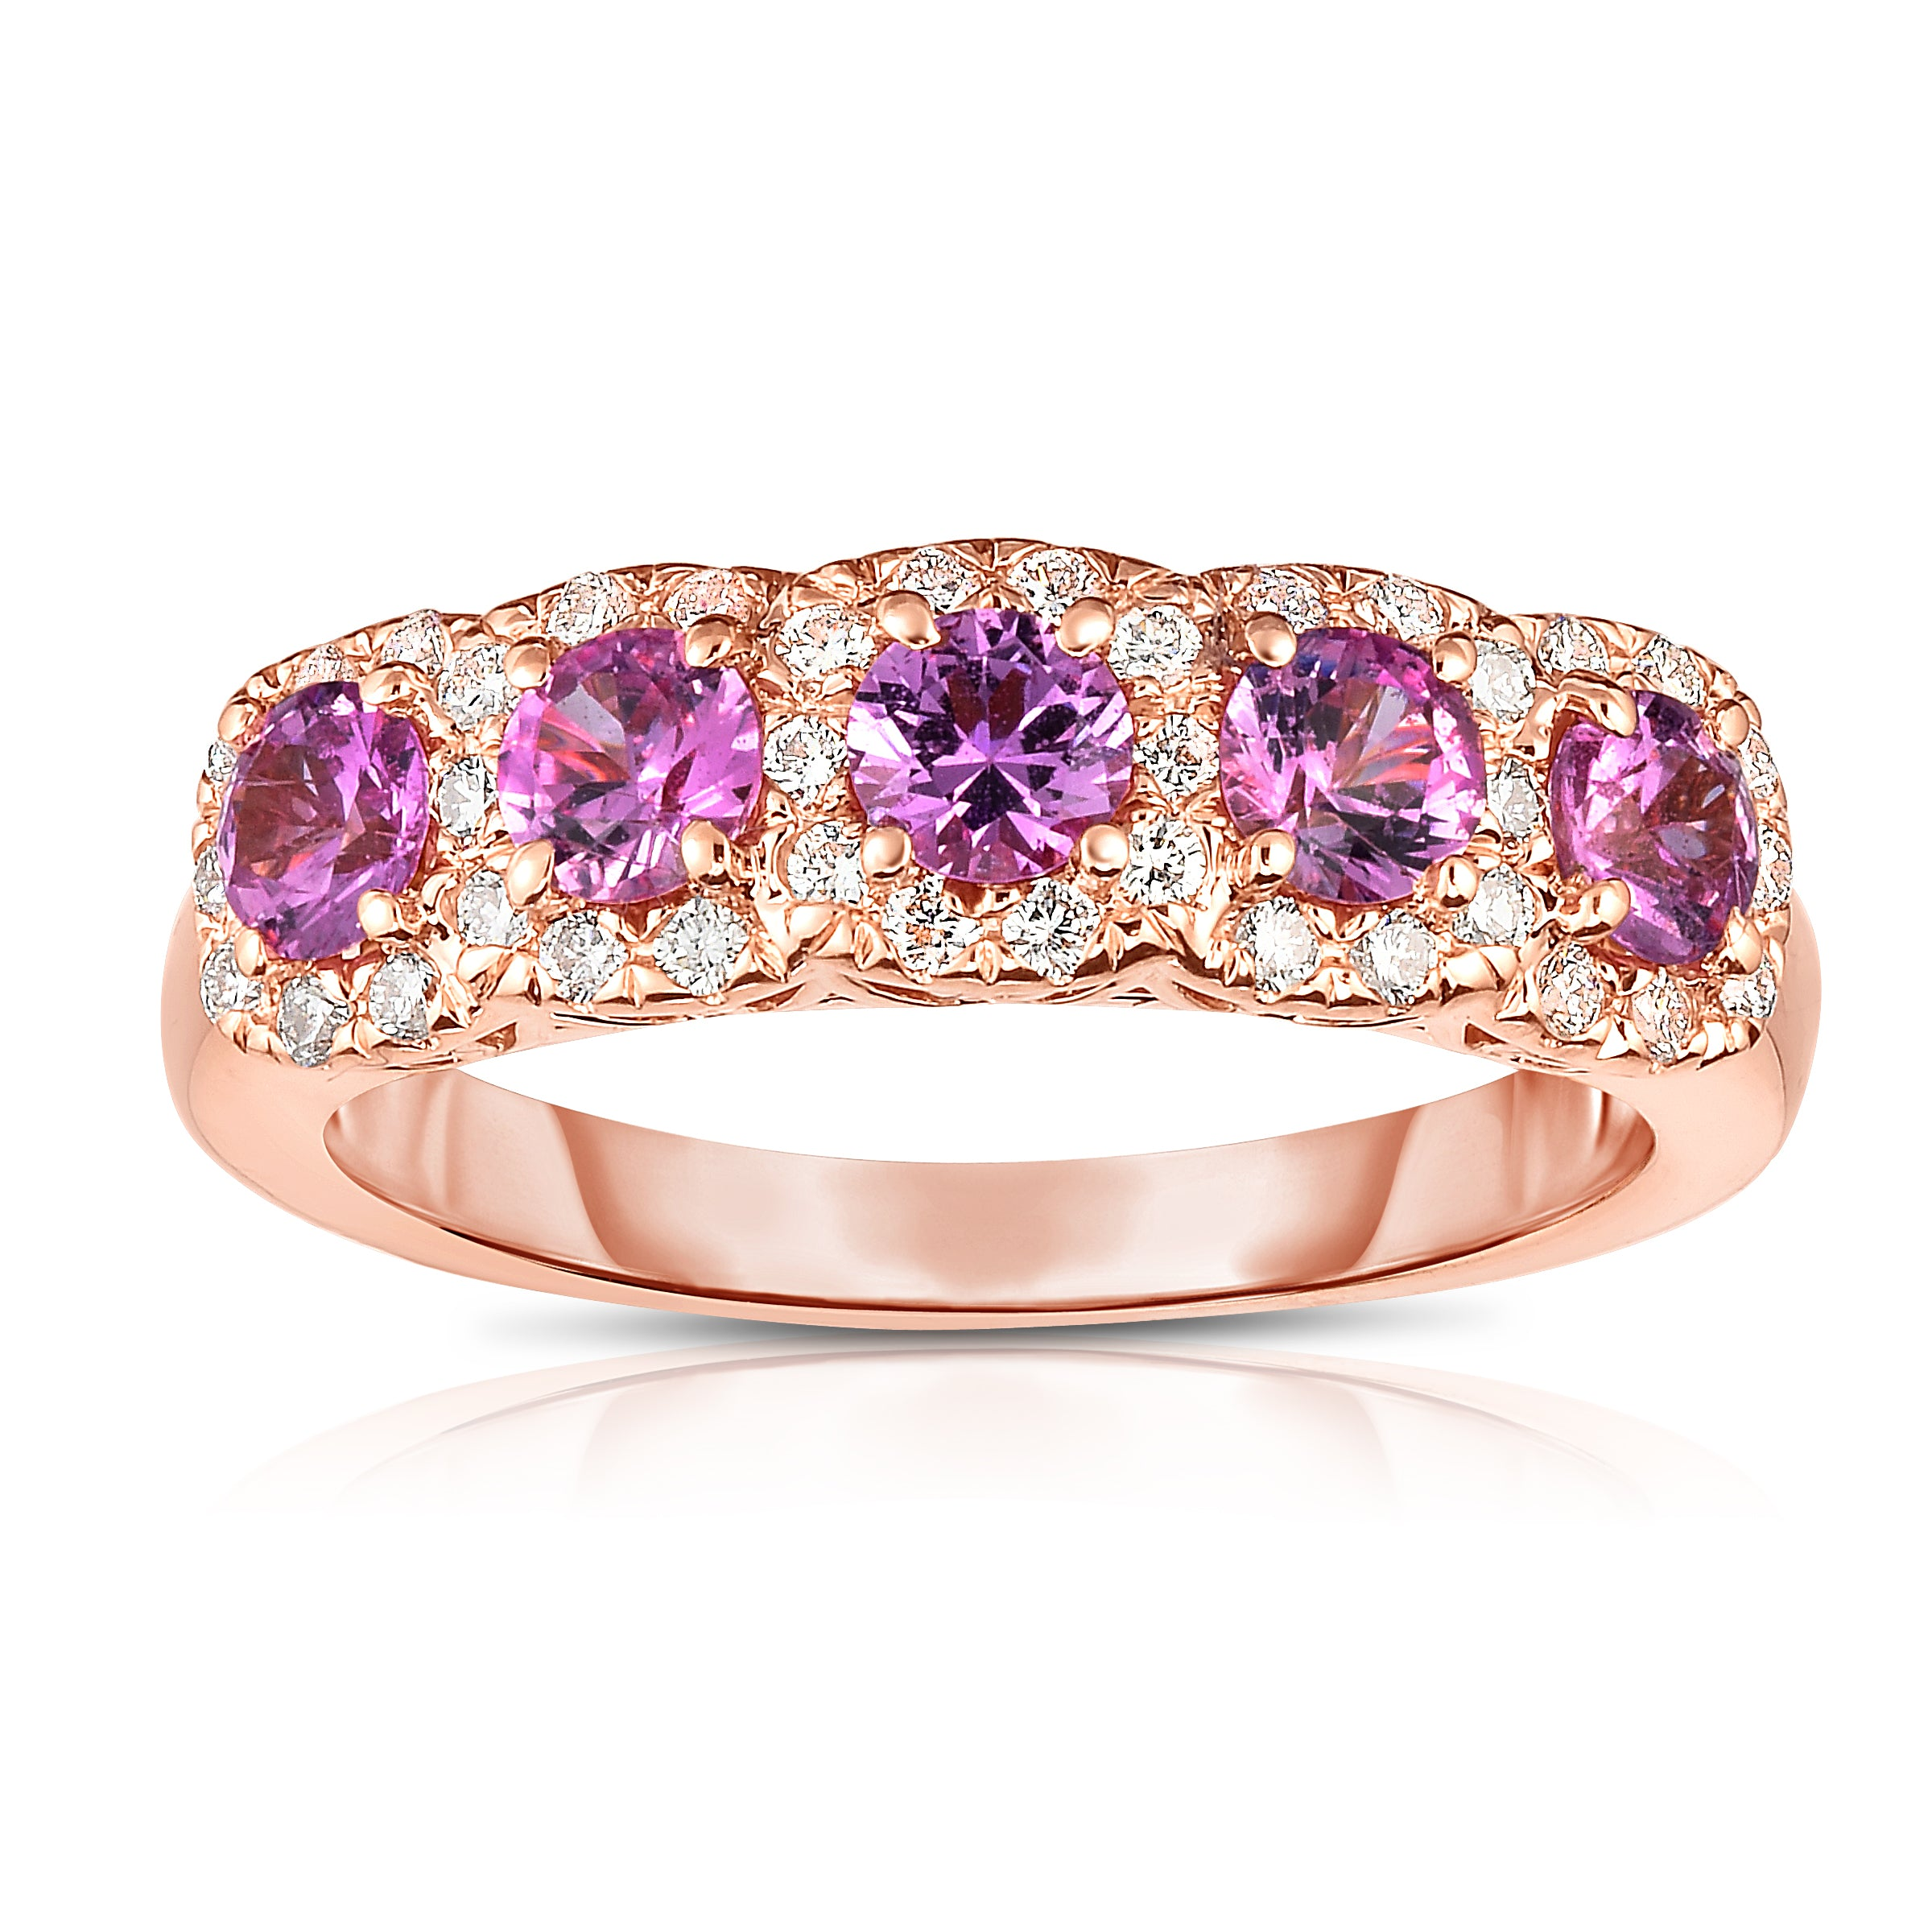 wedding ring gold tw amp in over silver rings p zirconia halo cubic pav white pave ct pink plated sapphire